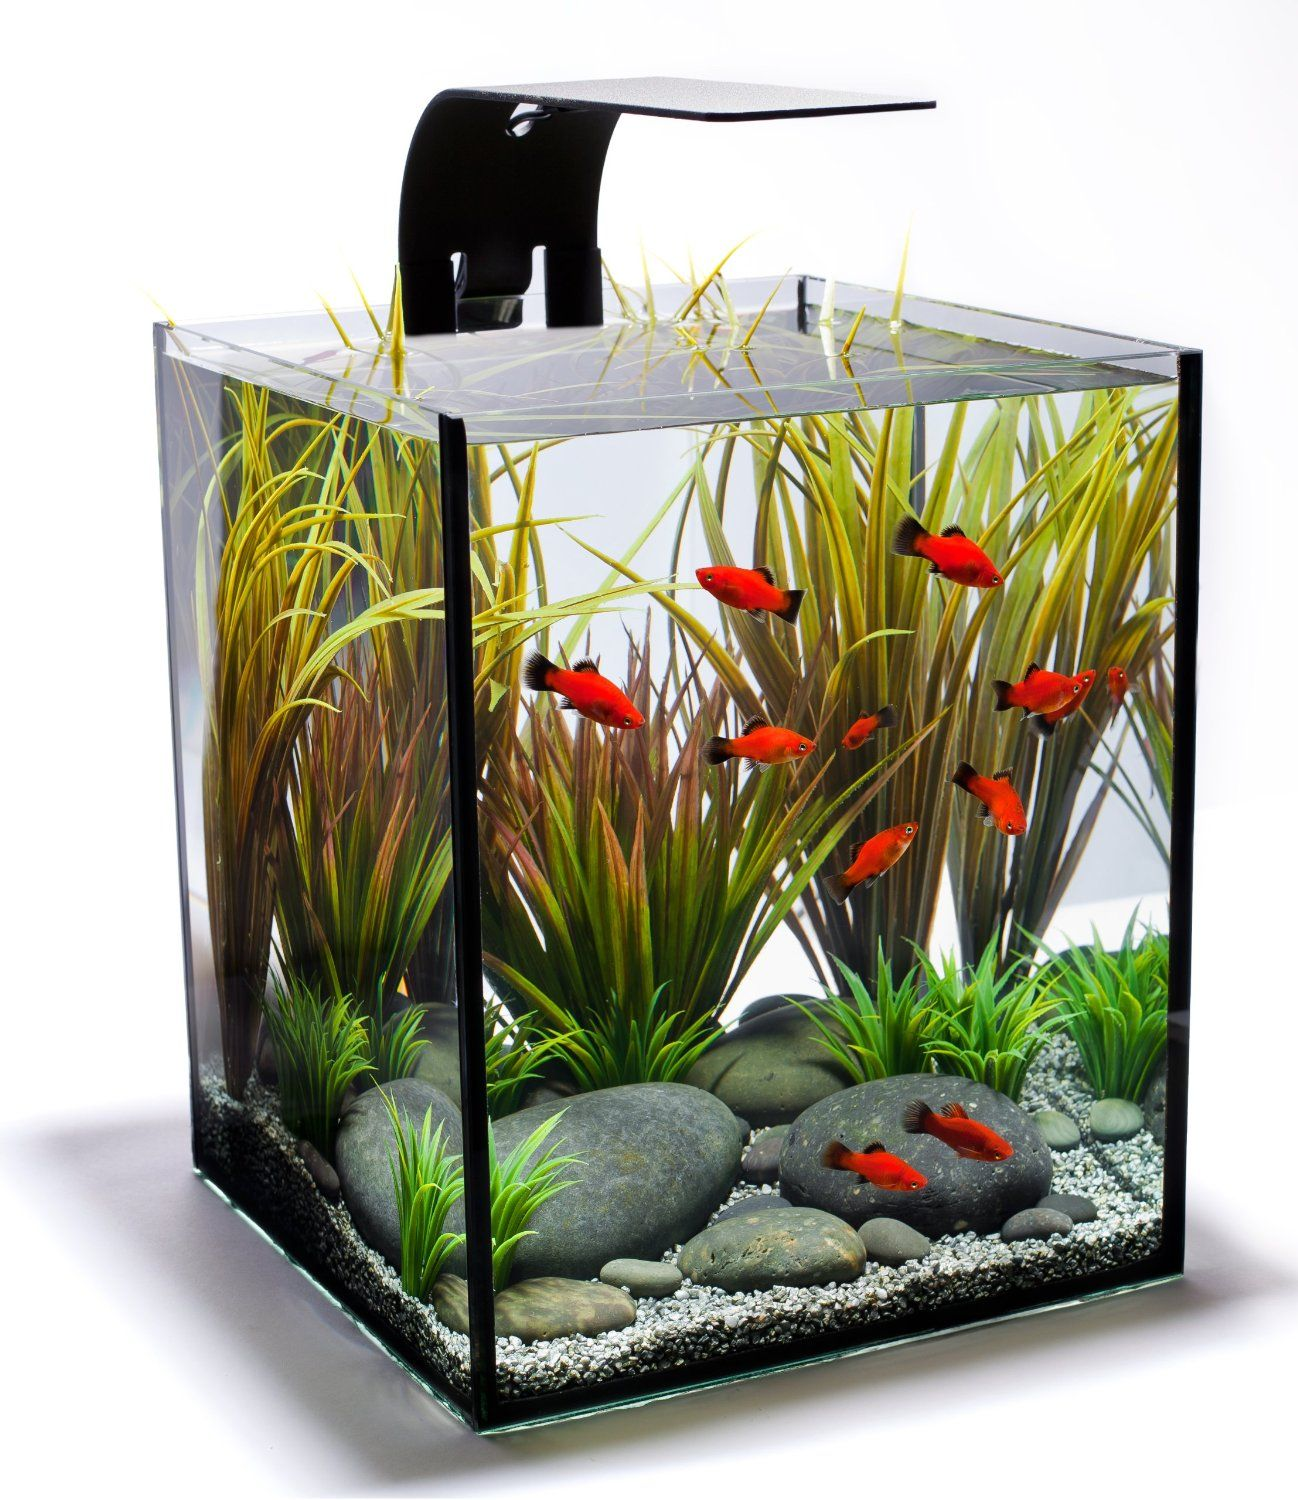 Home Aquarium Design Ideas: Wonderful Aquascape Aquarium Designs: Small Cubical